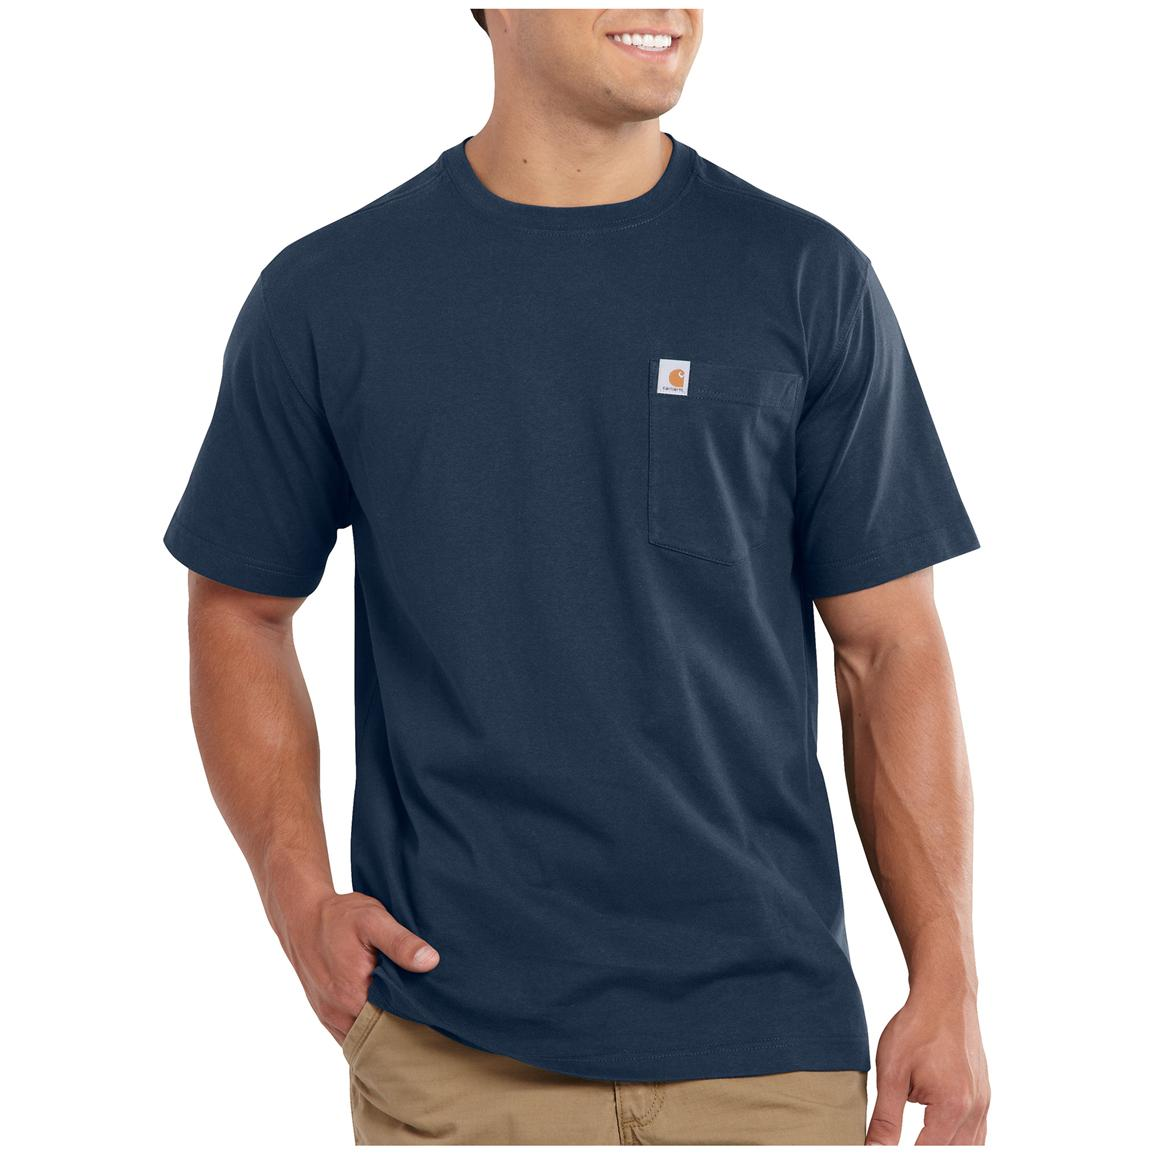 Carhartt Maddock Pocket Short-sleeve T-shirt, Navy